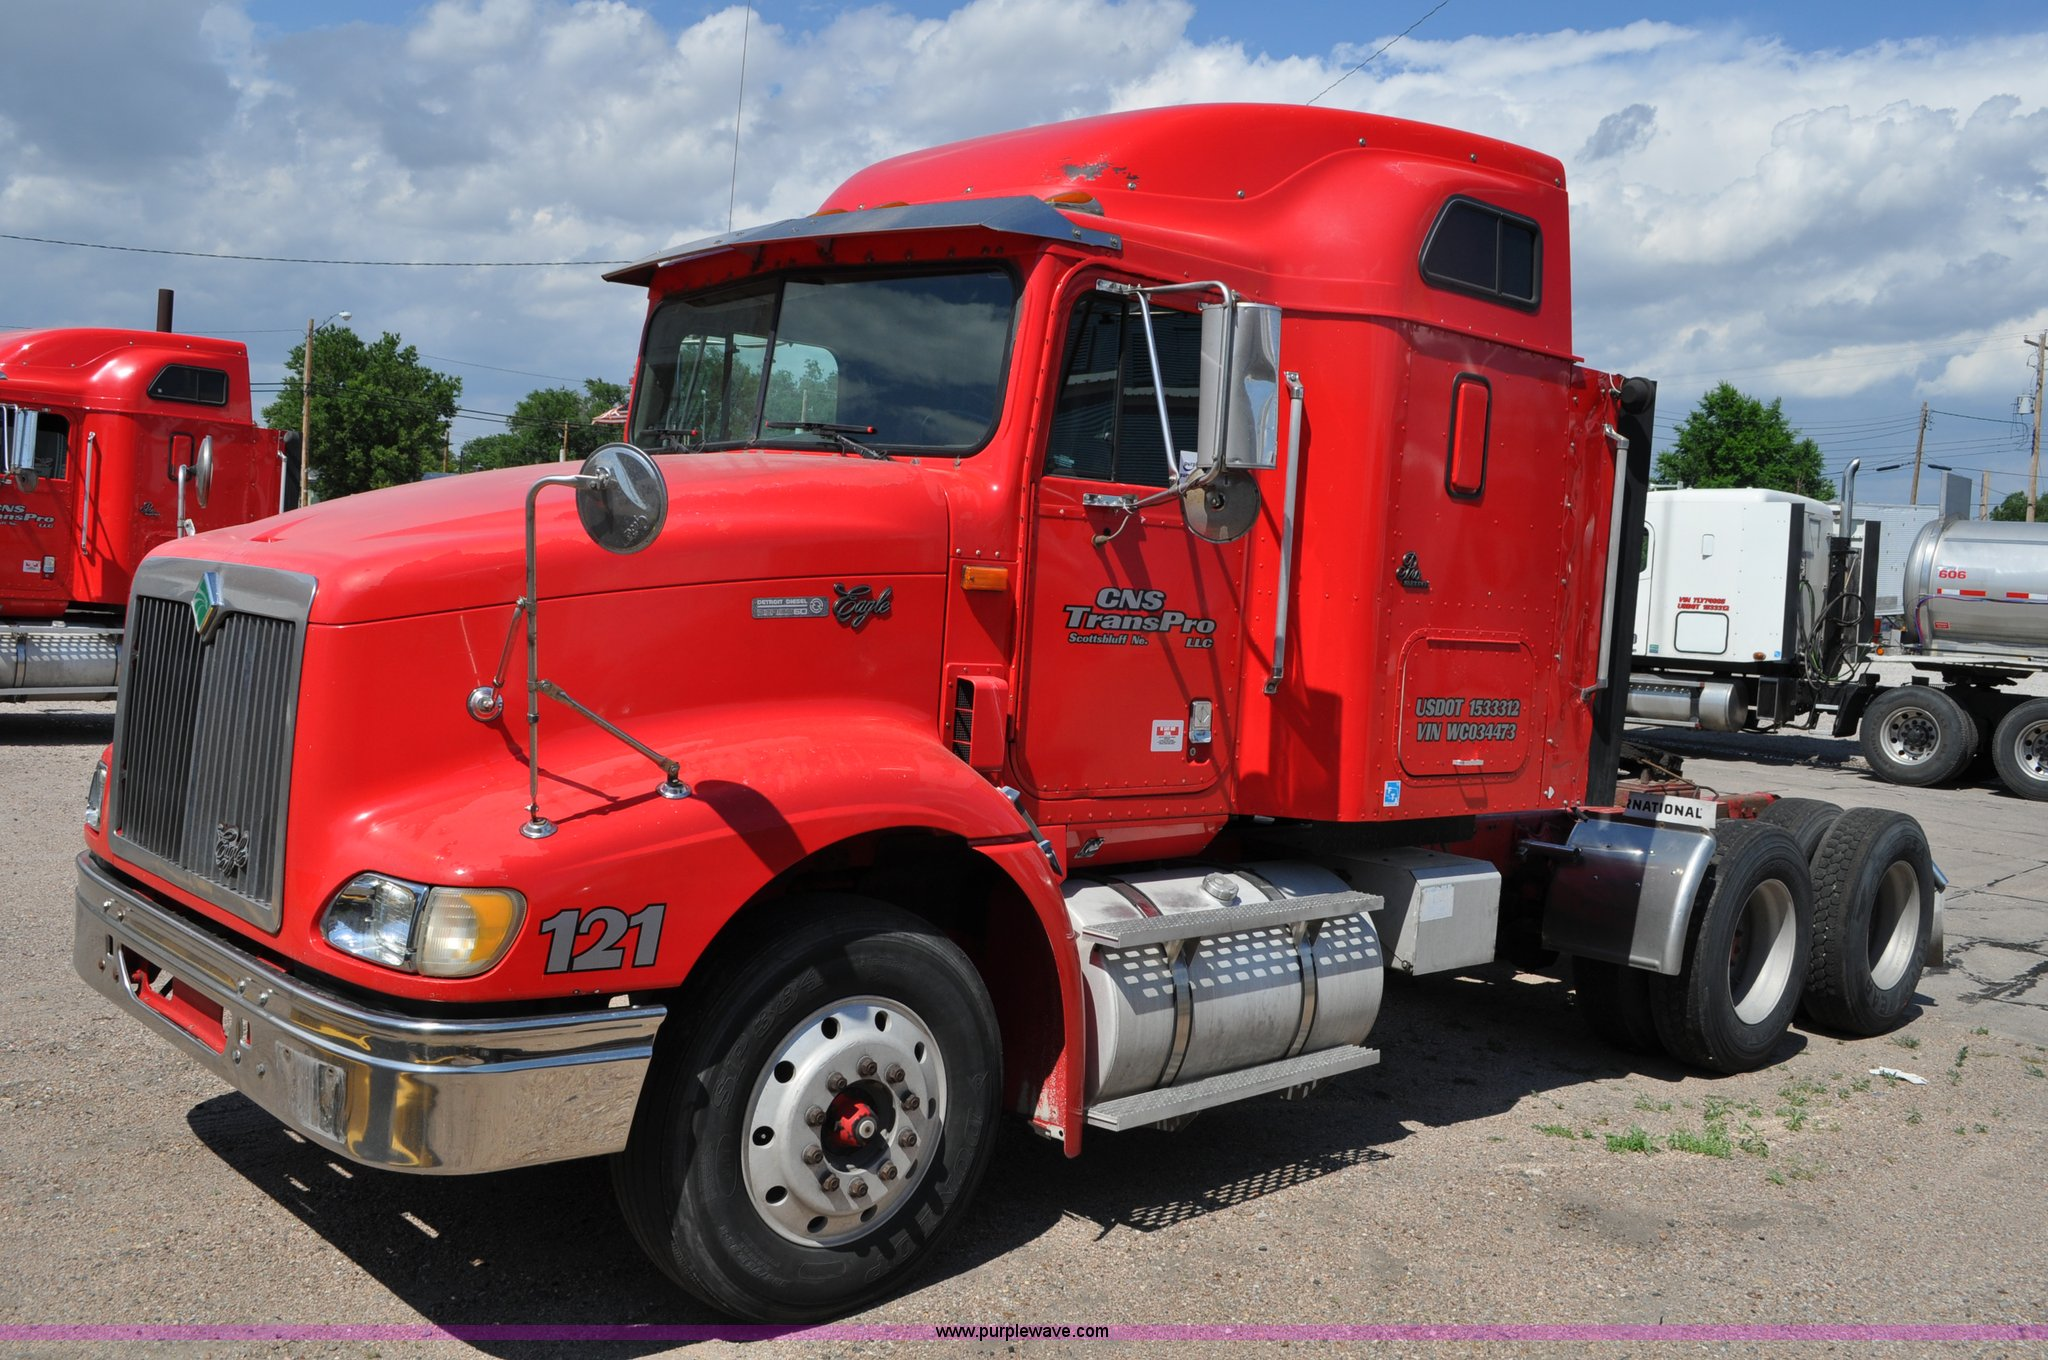 1998 international 9200 eagle semi truck item g6059 sold 1969 Mustang Wiring Harness g6059 image for item g6059 1998 international 9200 eagle semi truck